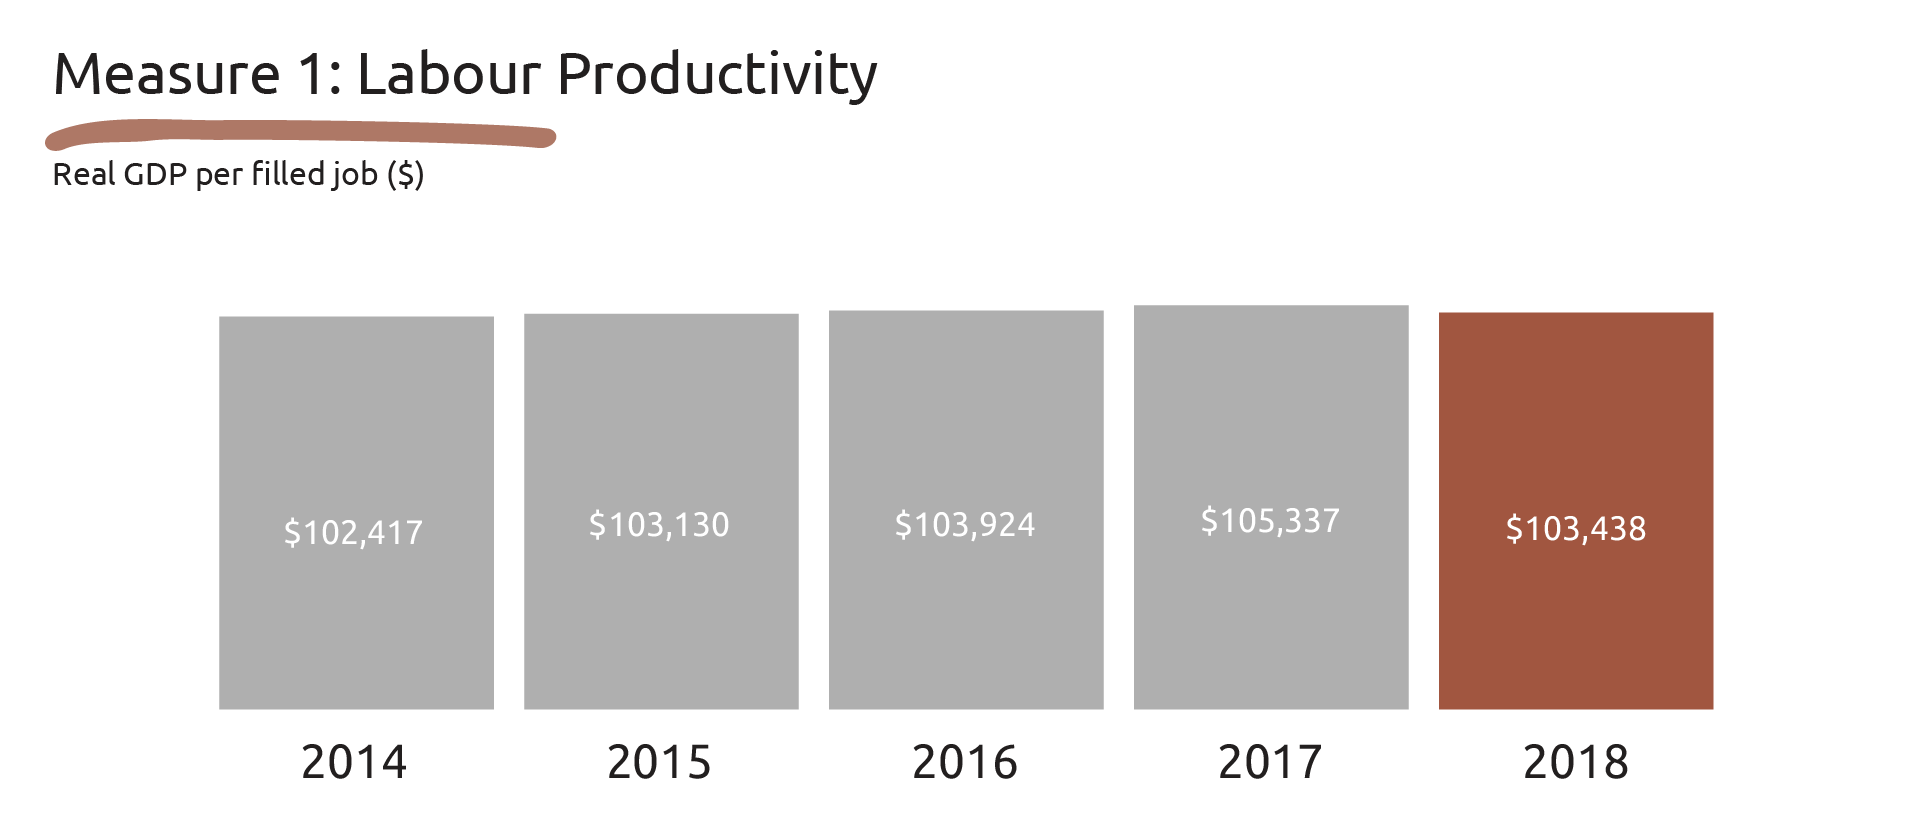 Image showing the data for Measure 1: Labour Productivity.